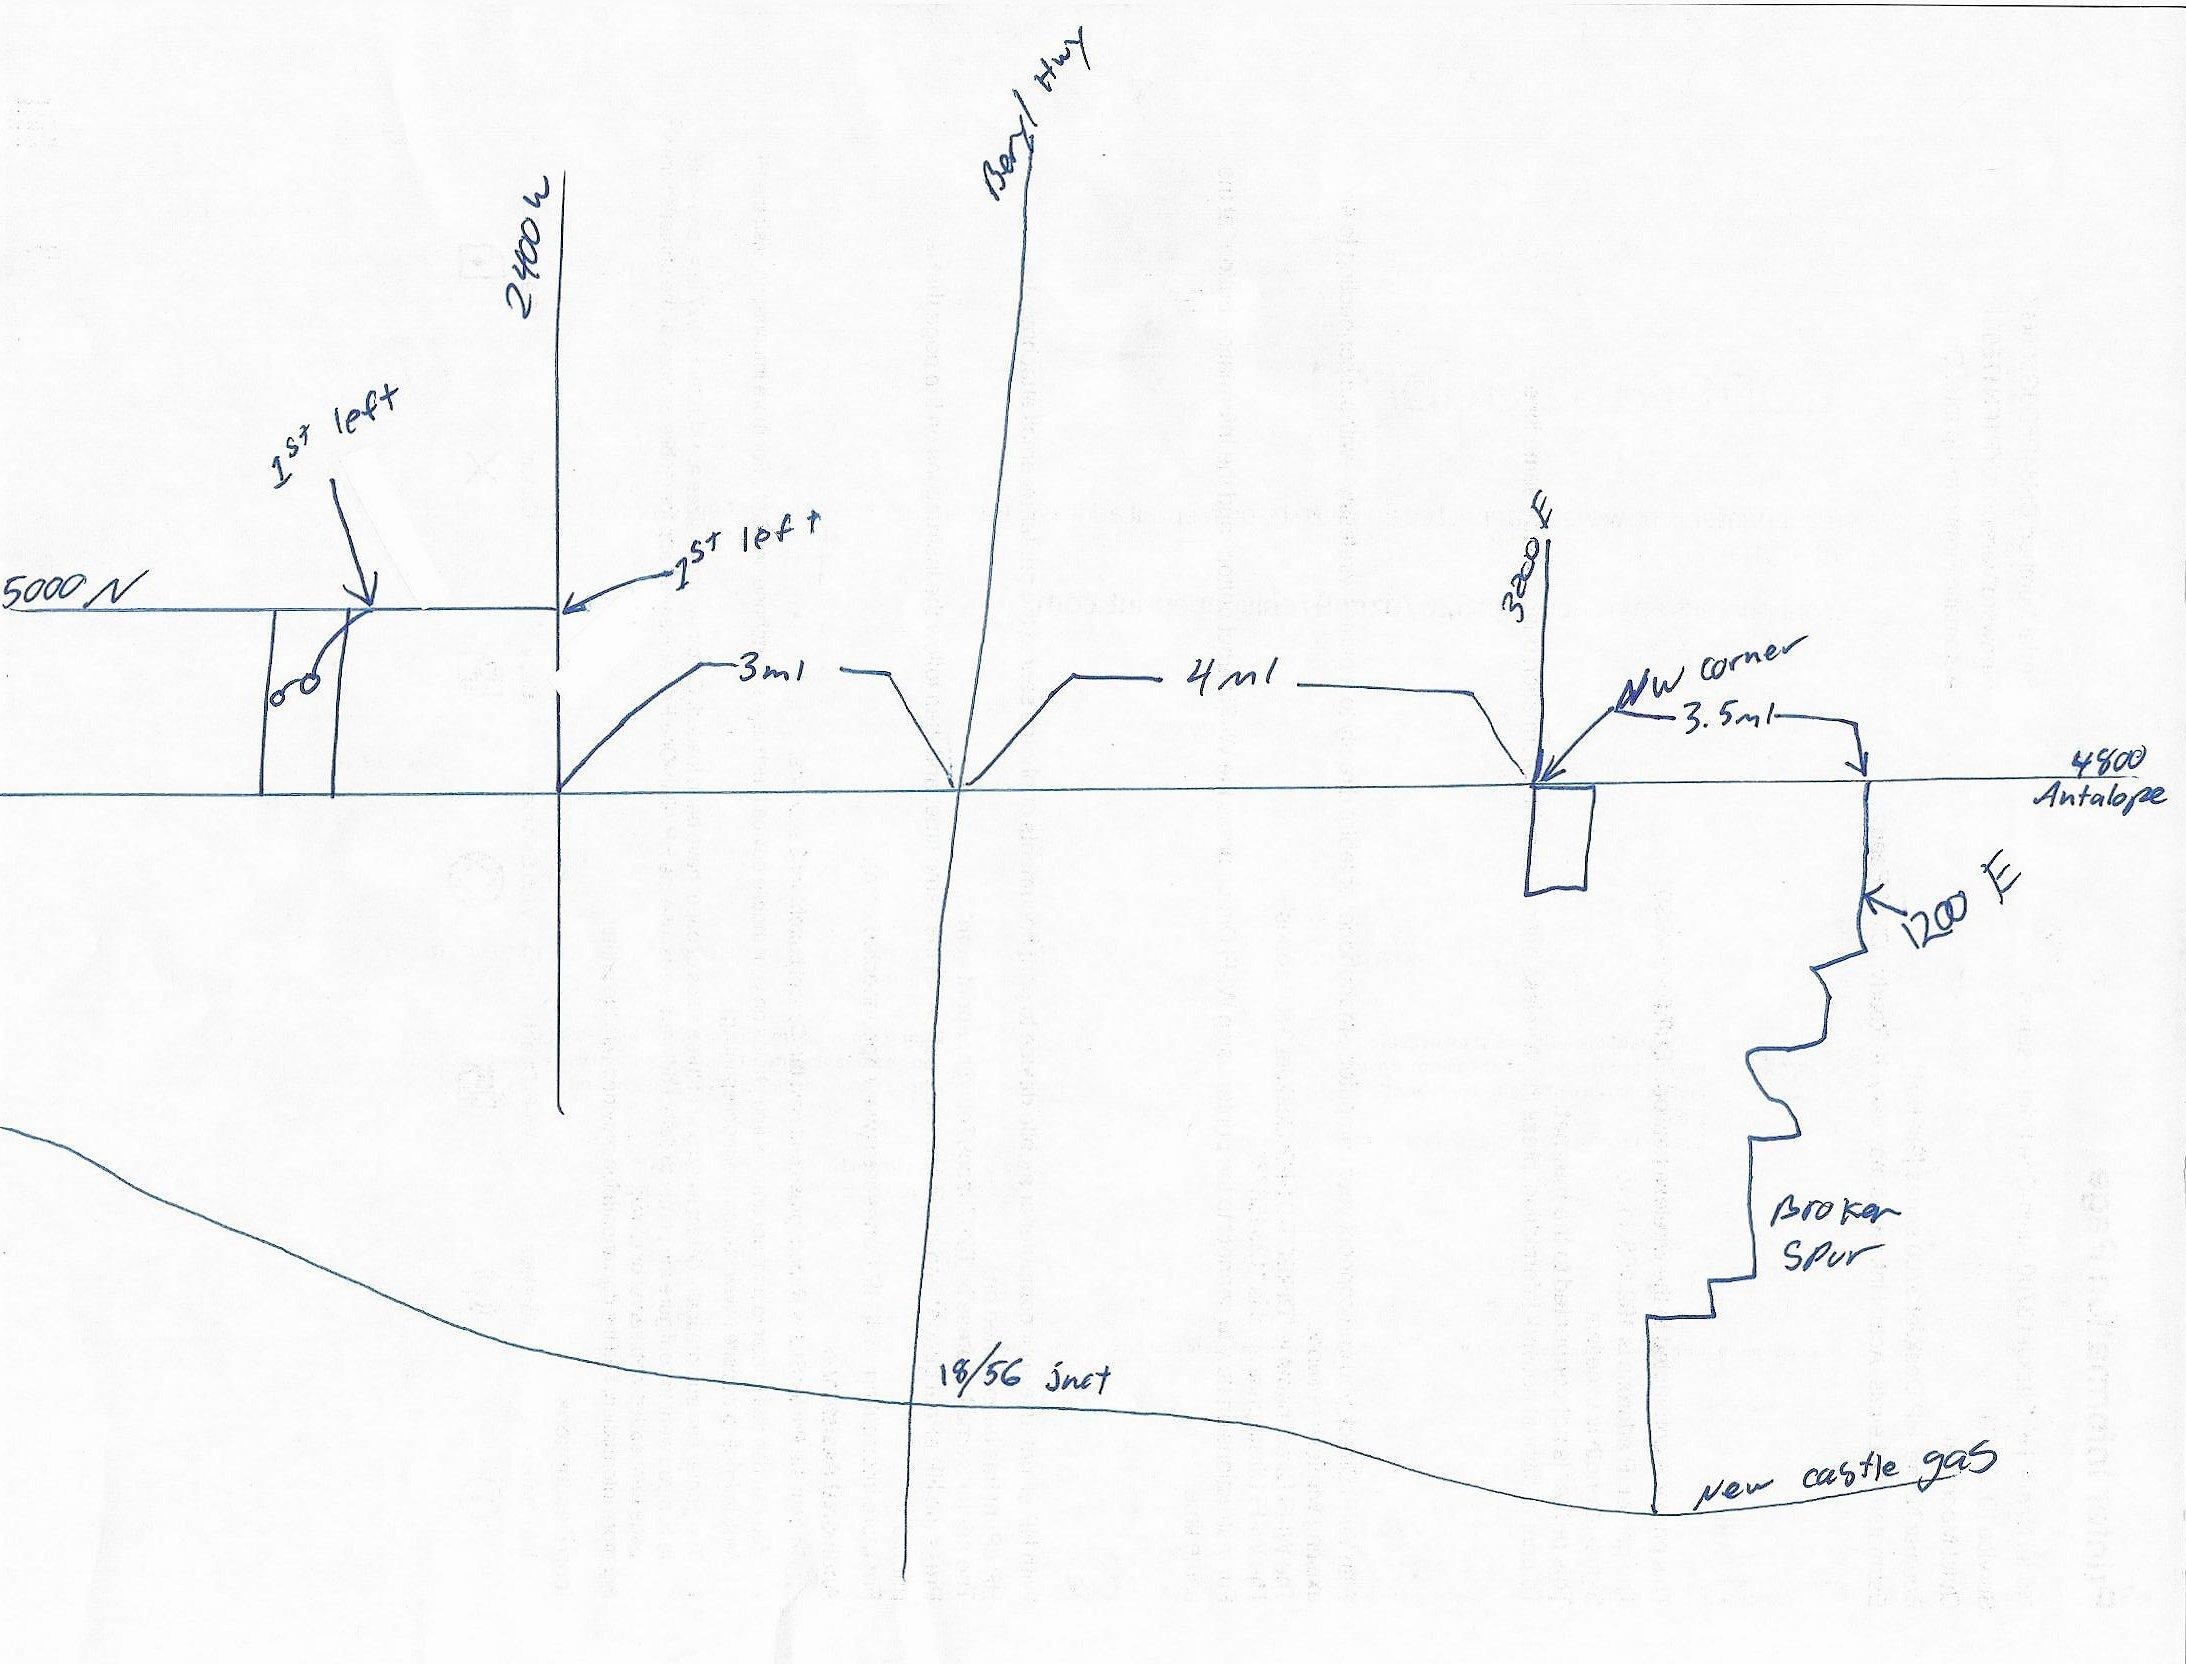 4800 Antelope Rd. to 3200 W to 5000 N to dead end, see map on the MLS.Package purchase available on two lots for $20,000.